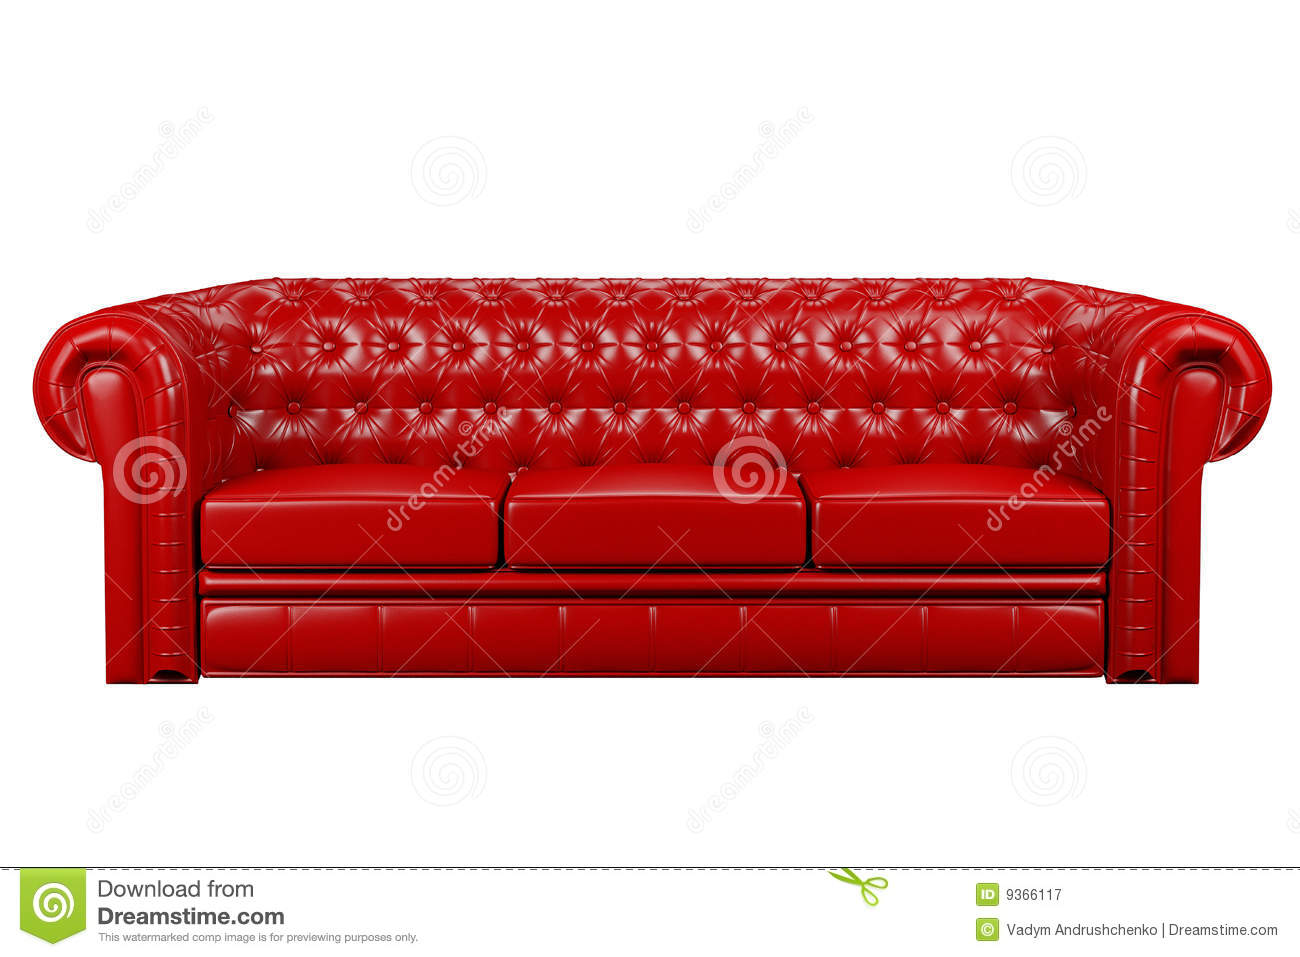 Red leather sofa 3d stock image. Image of decor, button - 9366117